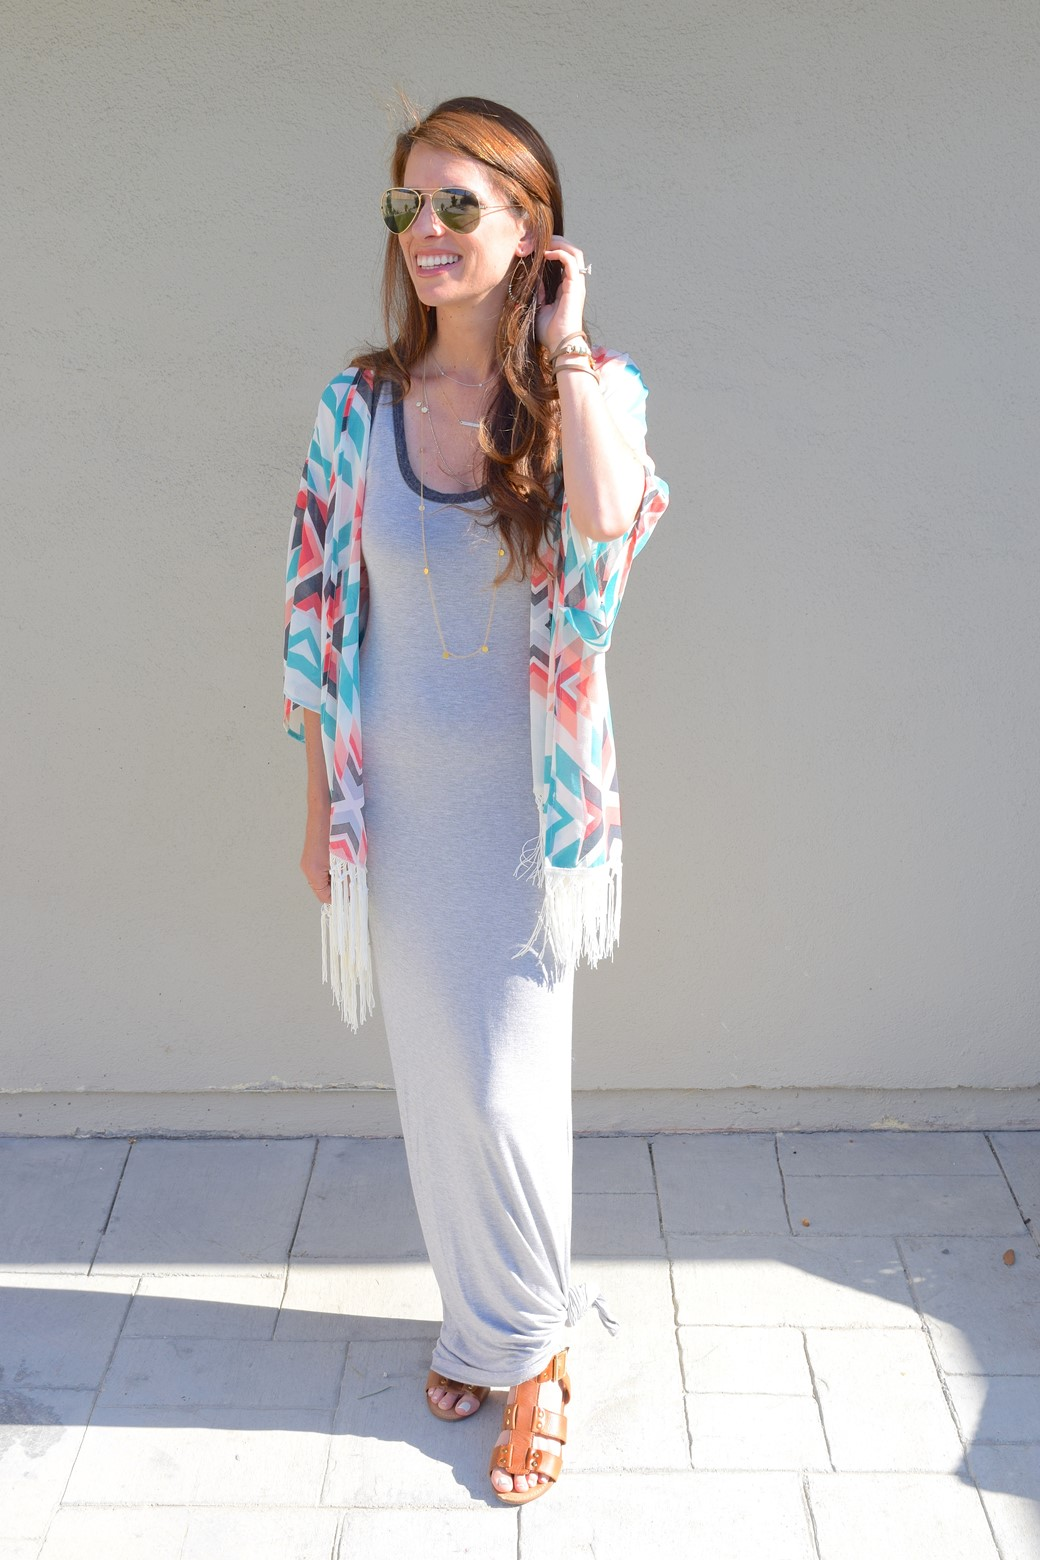 4. Wear of the Week Kimono + Maxi Dress